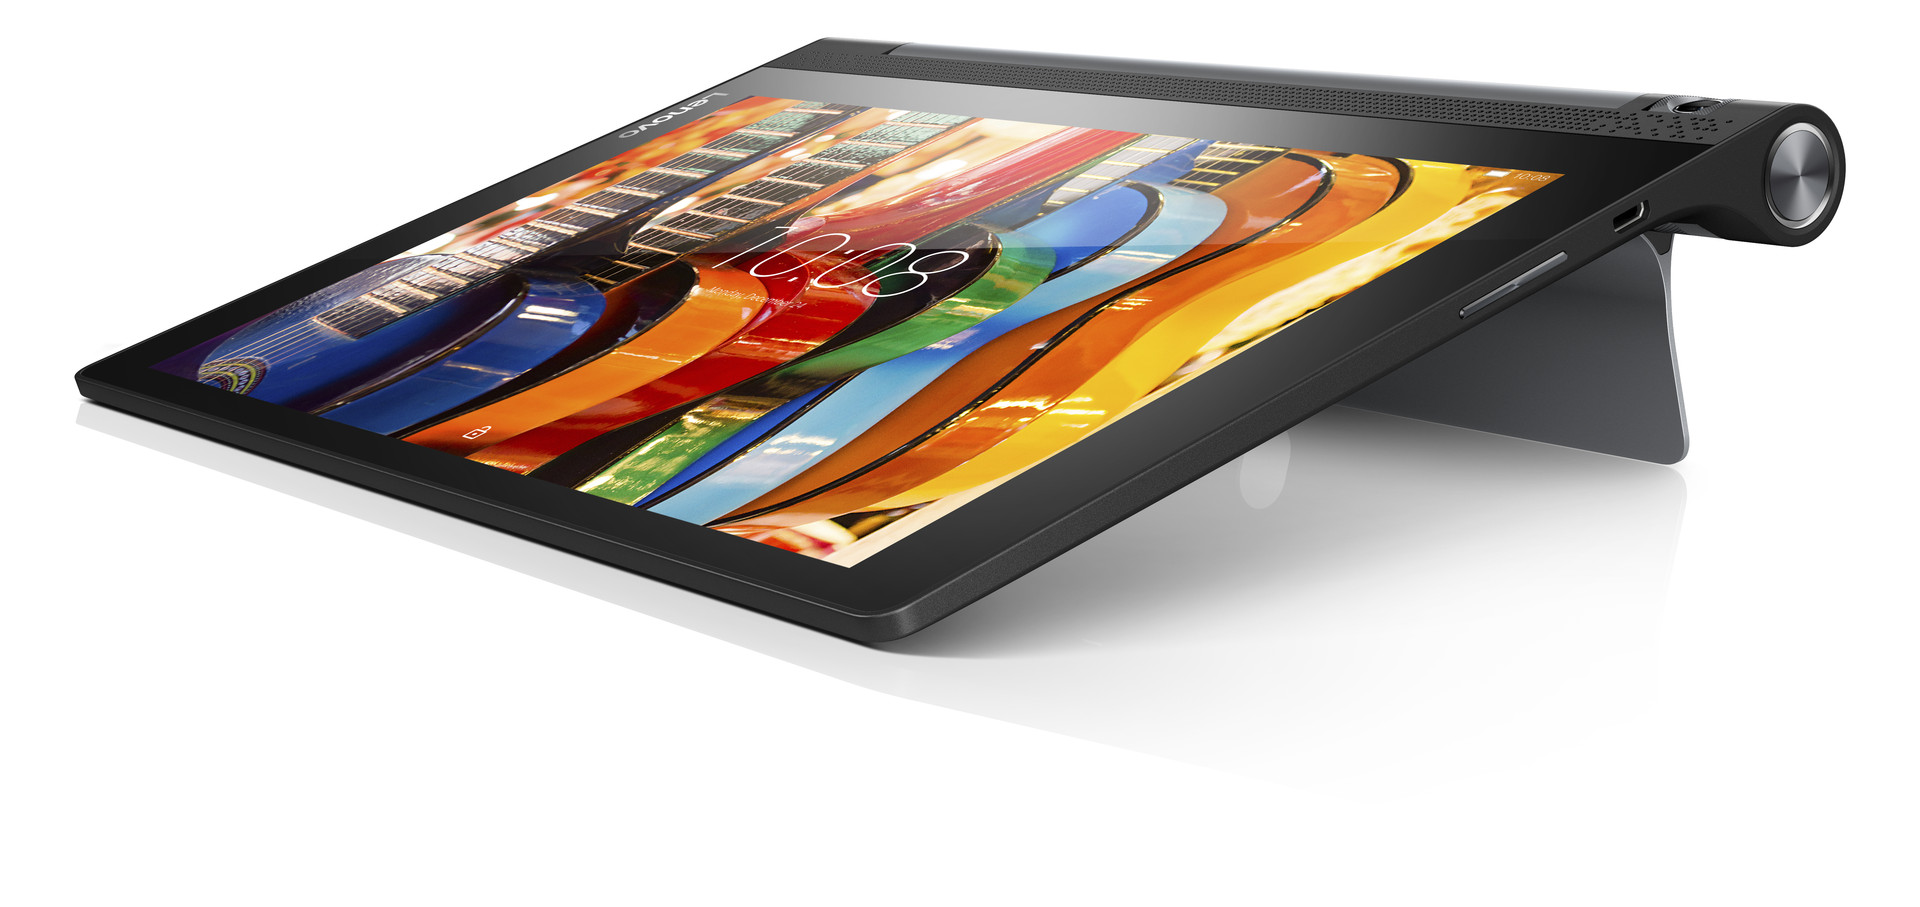 Lenovo Yoga Tab 3 10 Tablet Review - NotebookCheck net Reviews